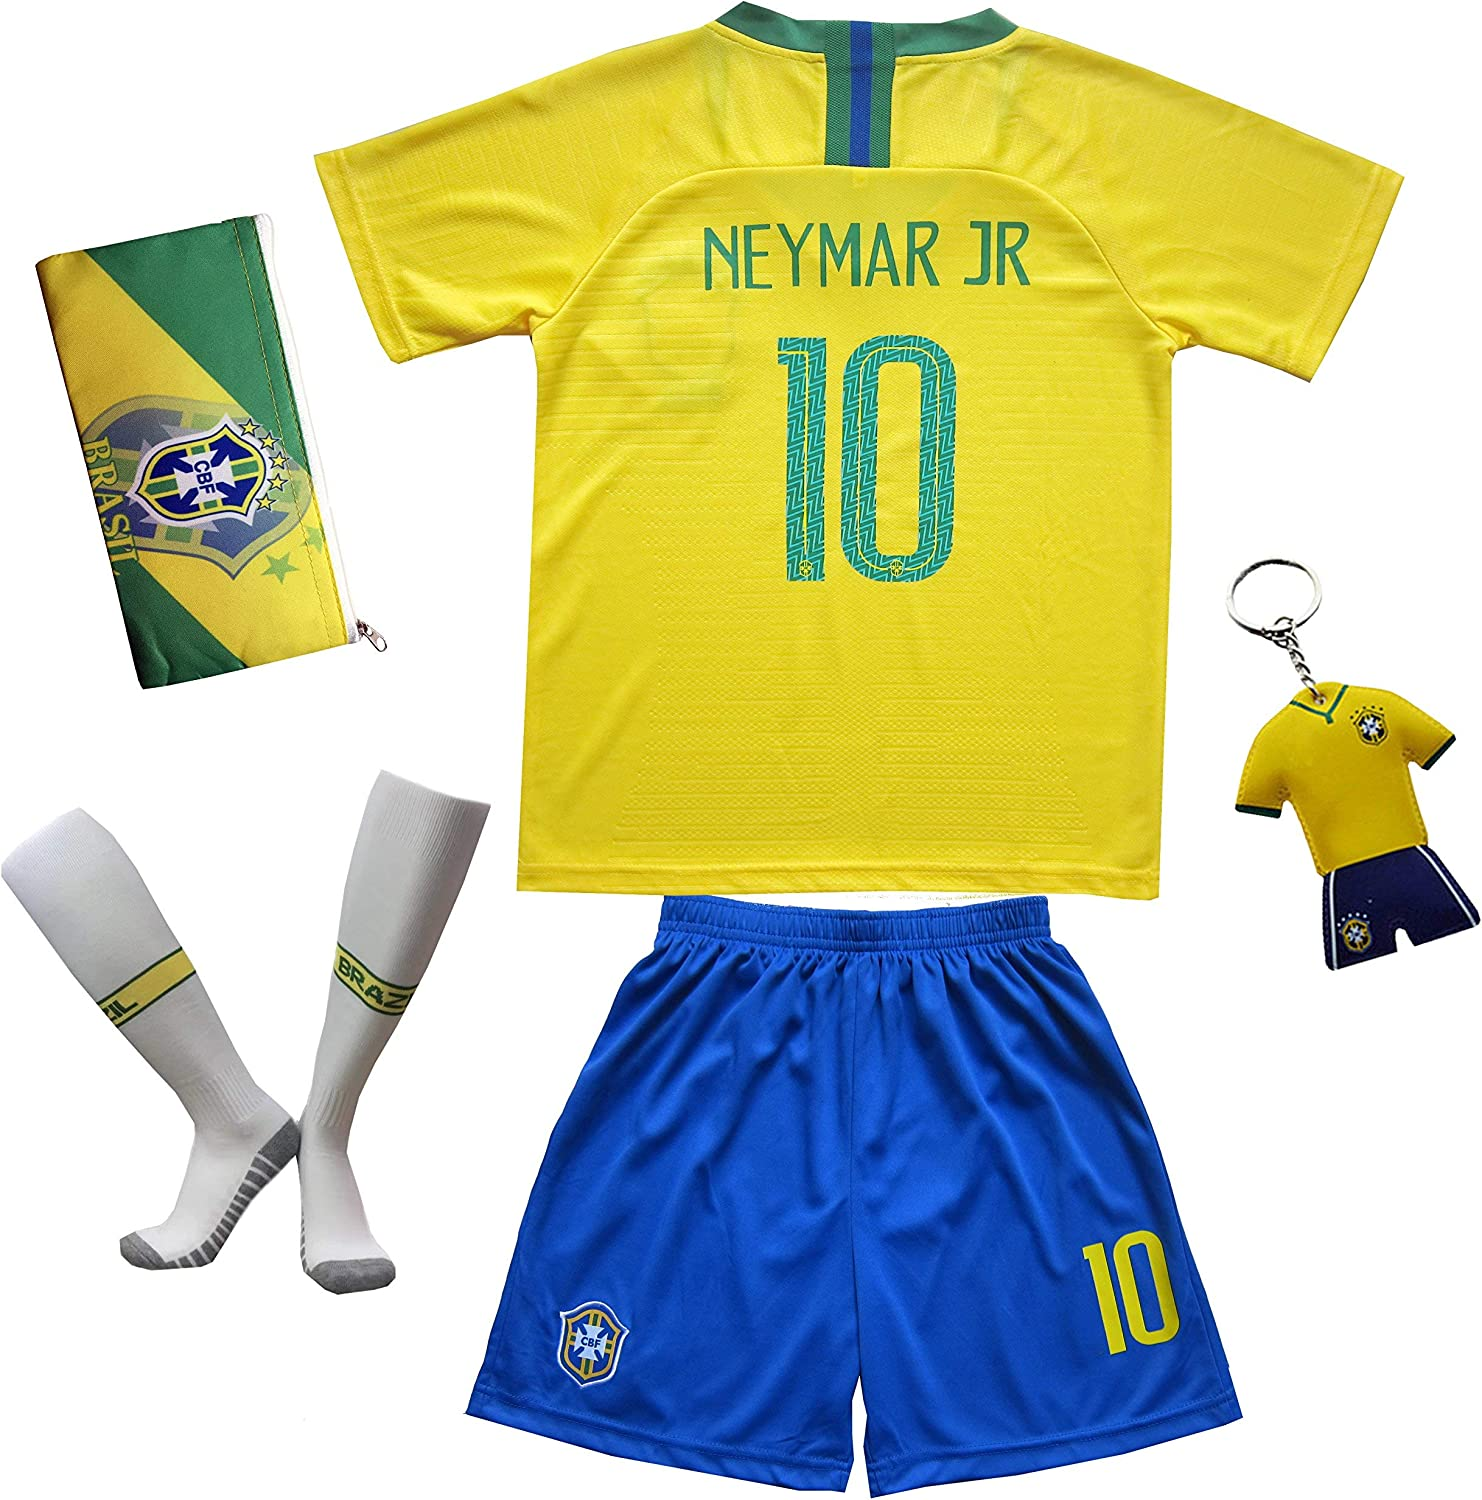 KID BOX Brazil #10 Kids Home Soccer Jerseys/Shorts Socks Gift Set Youth Sizes